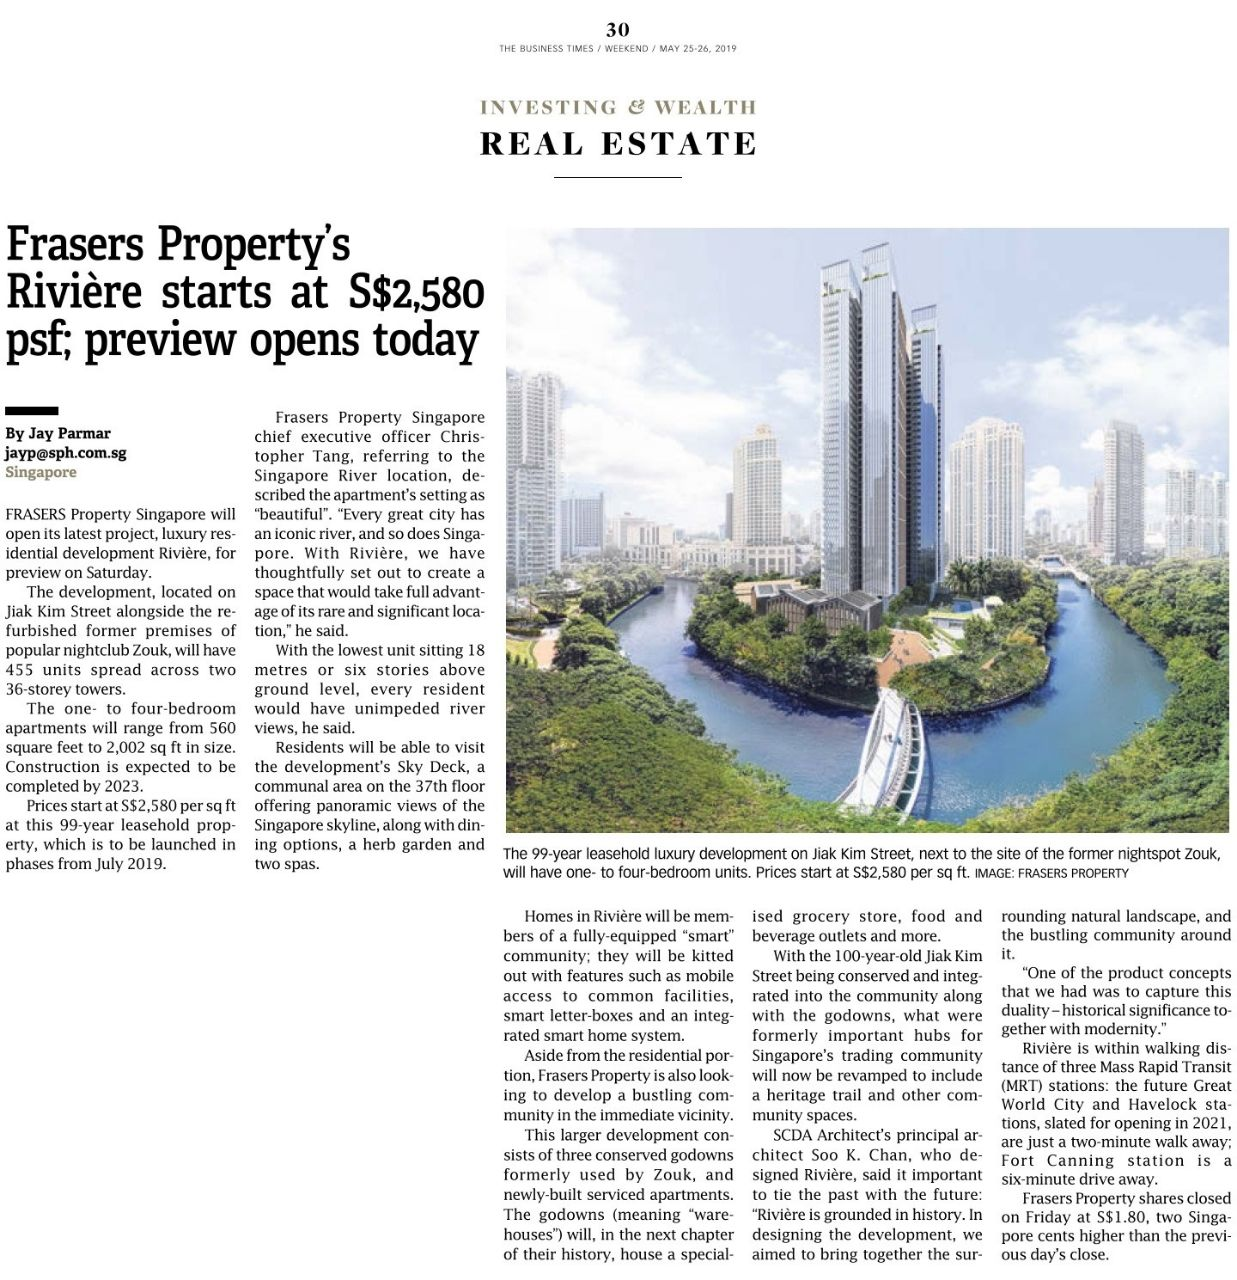 Frasers Property's Riviere starts at S$2,580 psf; preview opens today